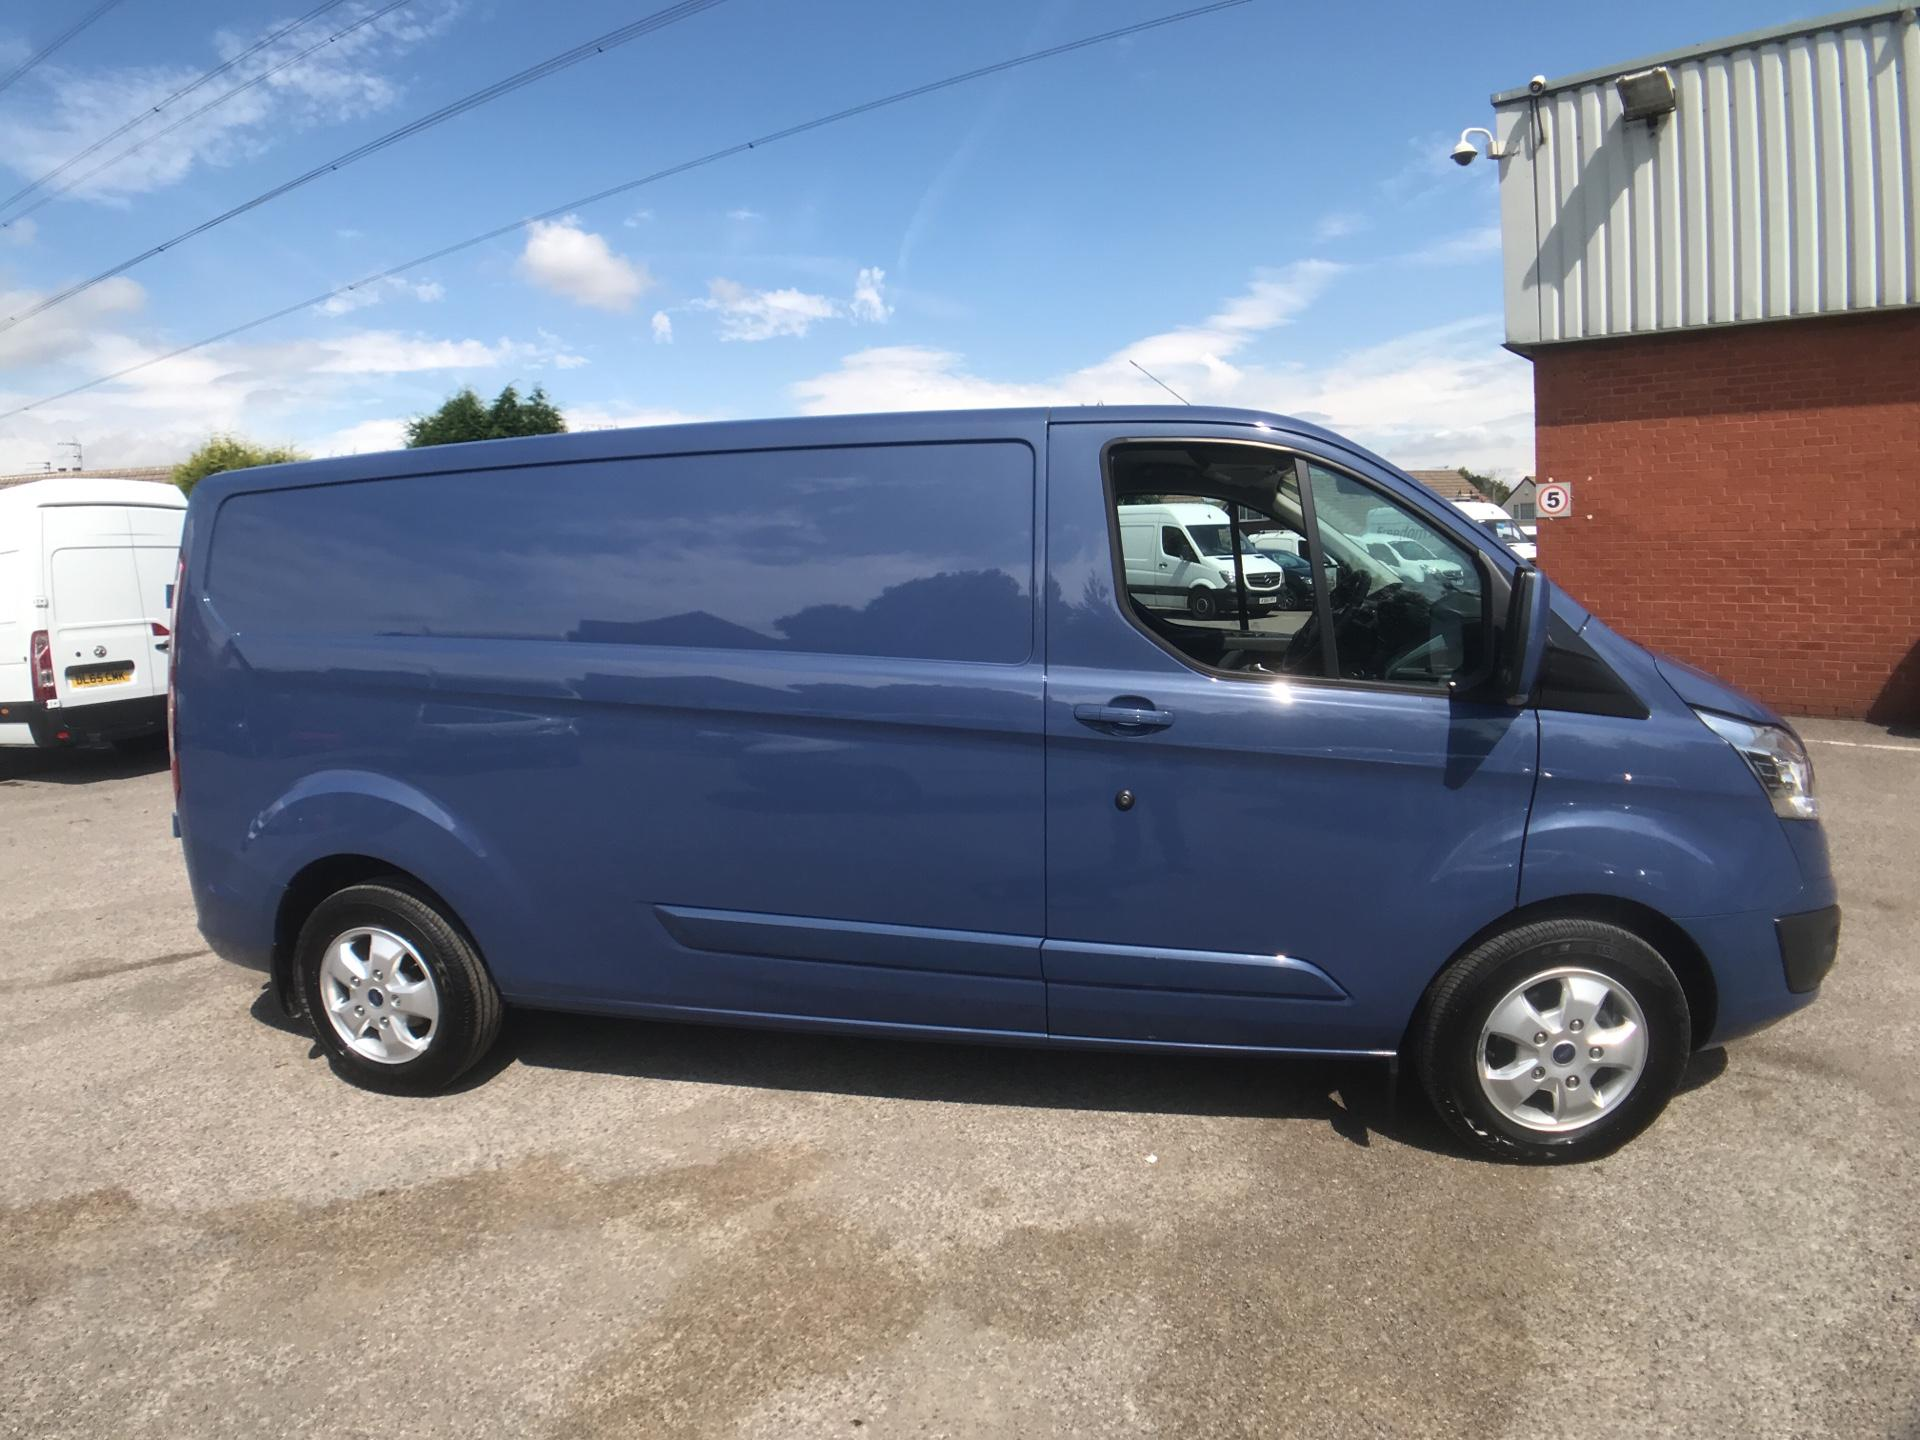 2018 Ford Transit Custom 2.0 Tdci 130Ps L2 Low Roof Limited Van Auto Euro 6 (BX18UCC) Image 4